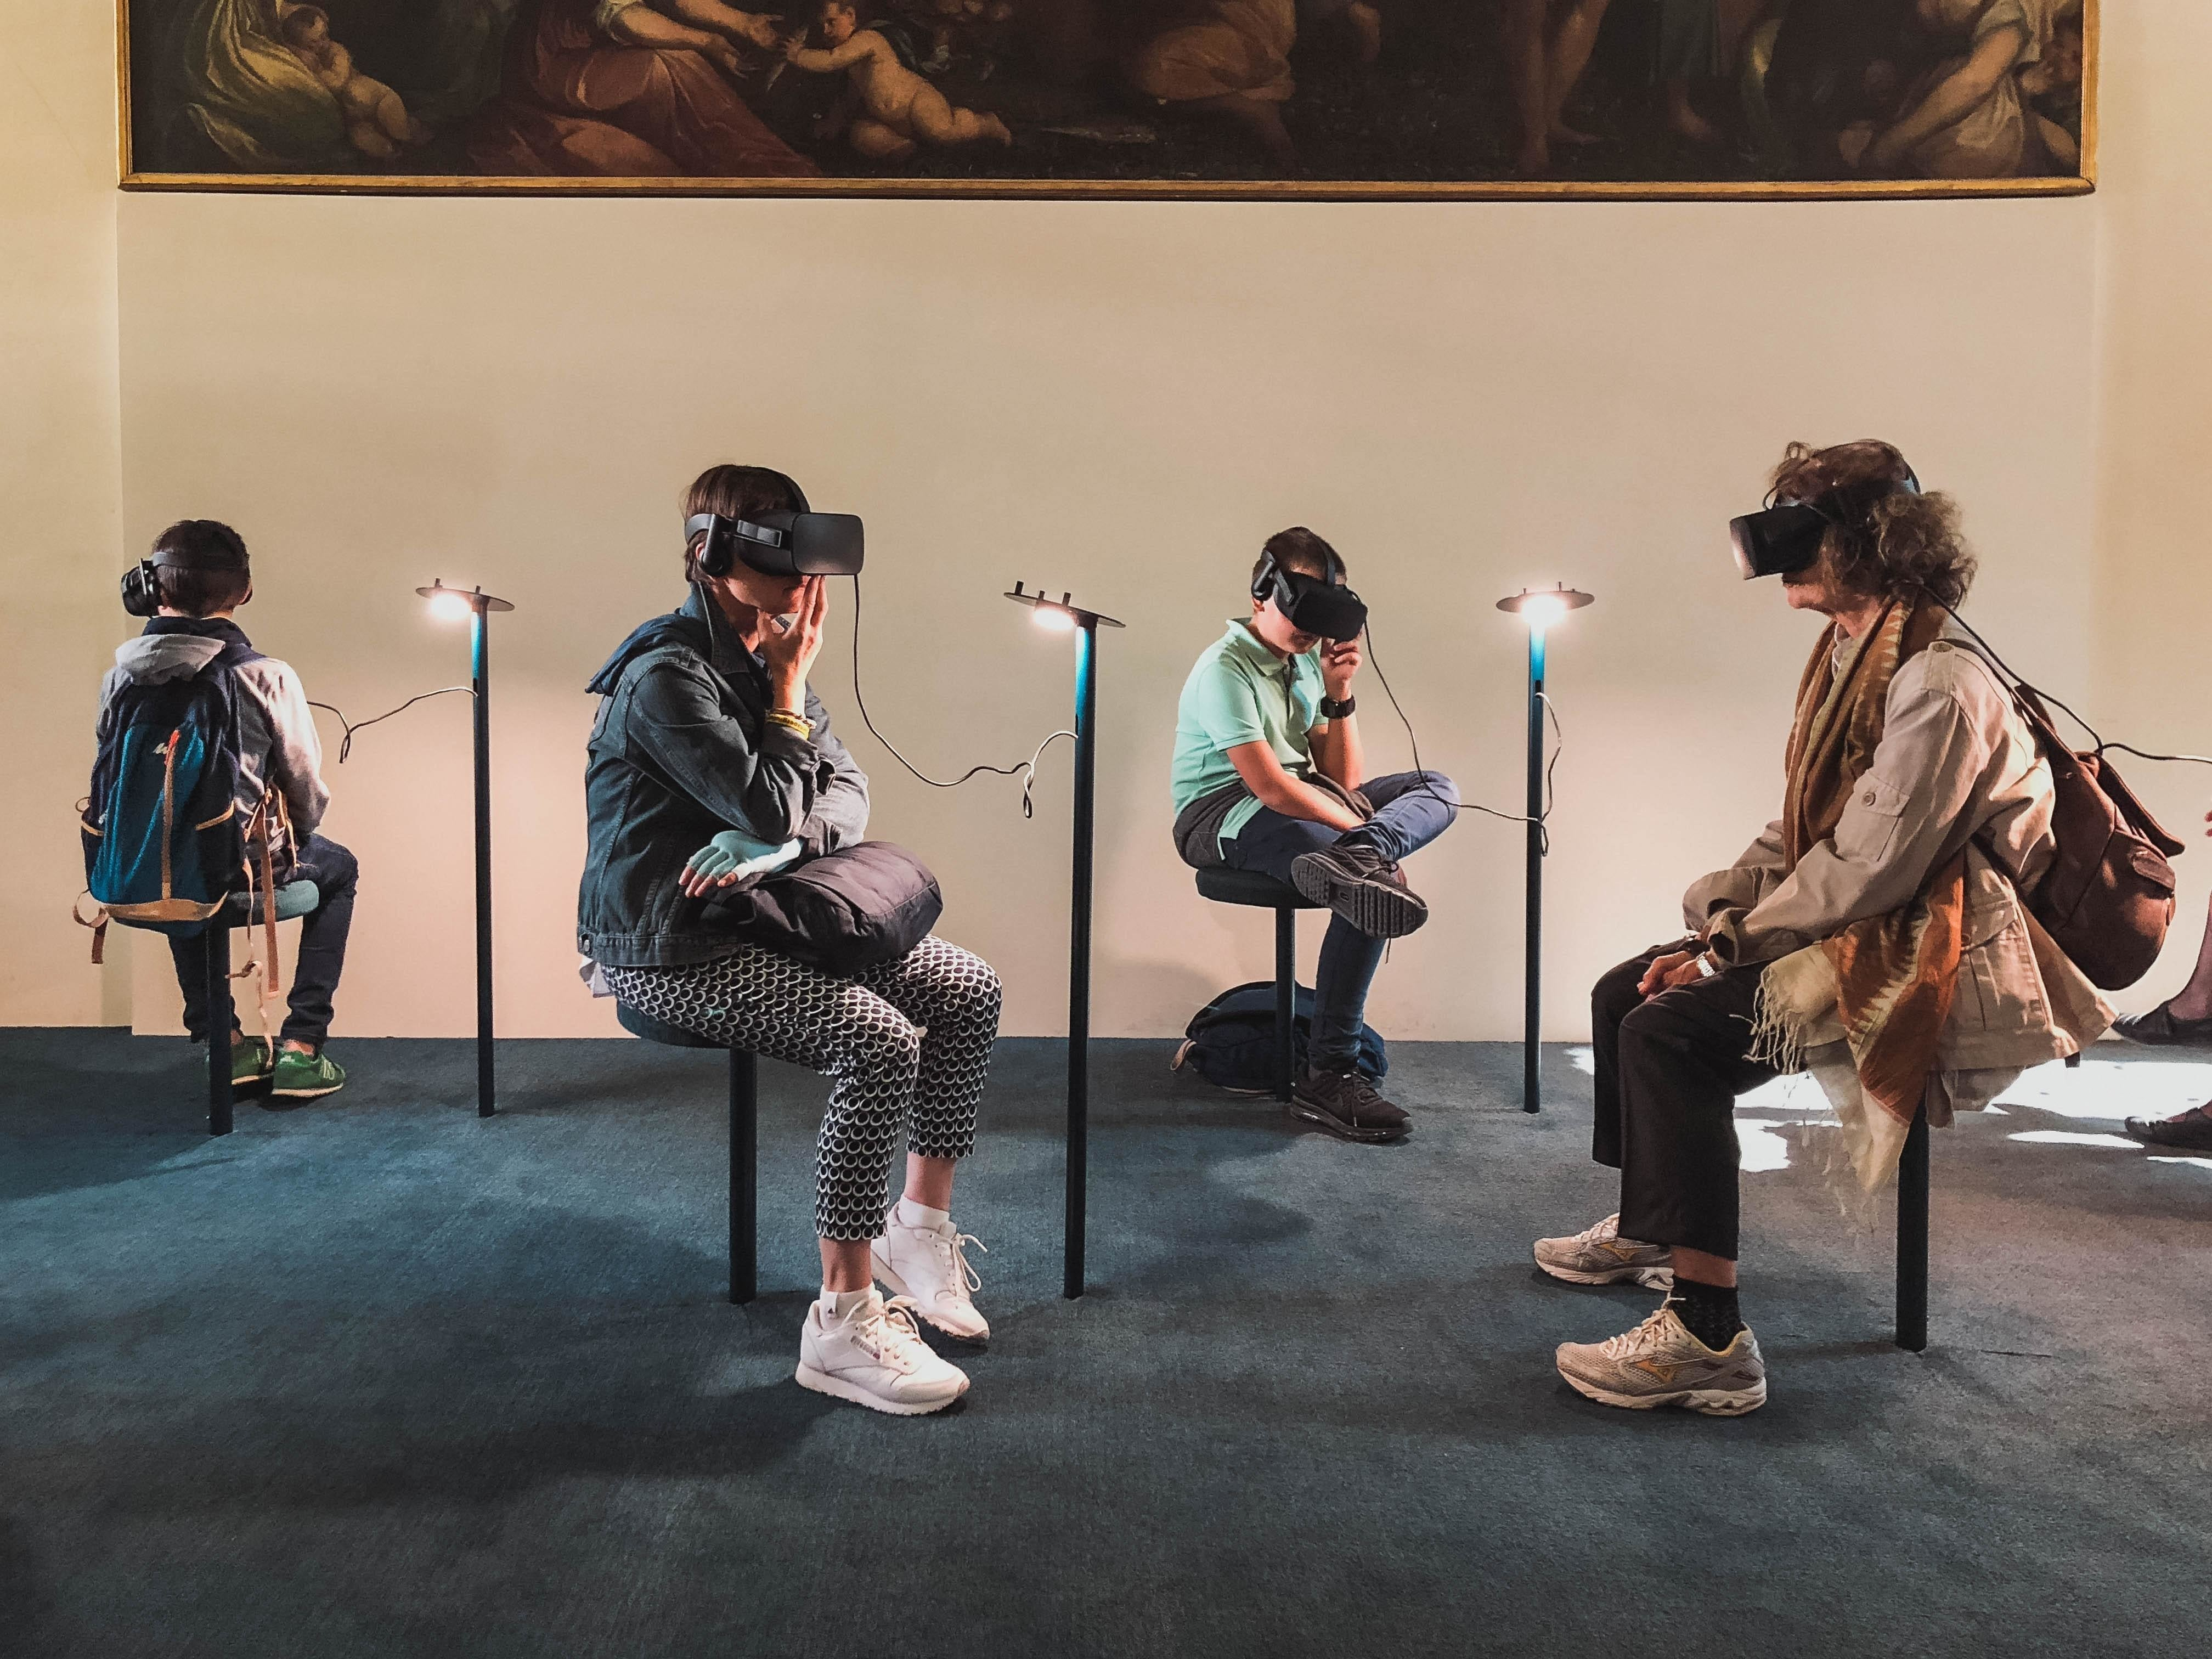 Like VR and AR before it, spatial computing is the next step in merging physical and digital worlds.